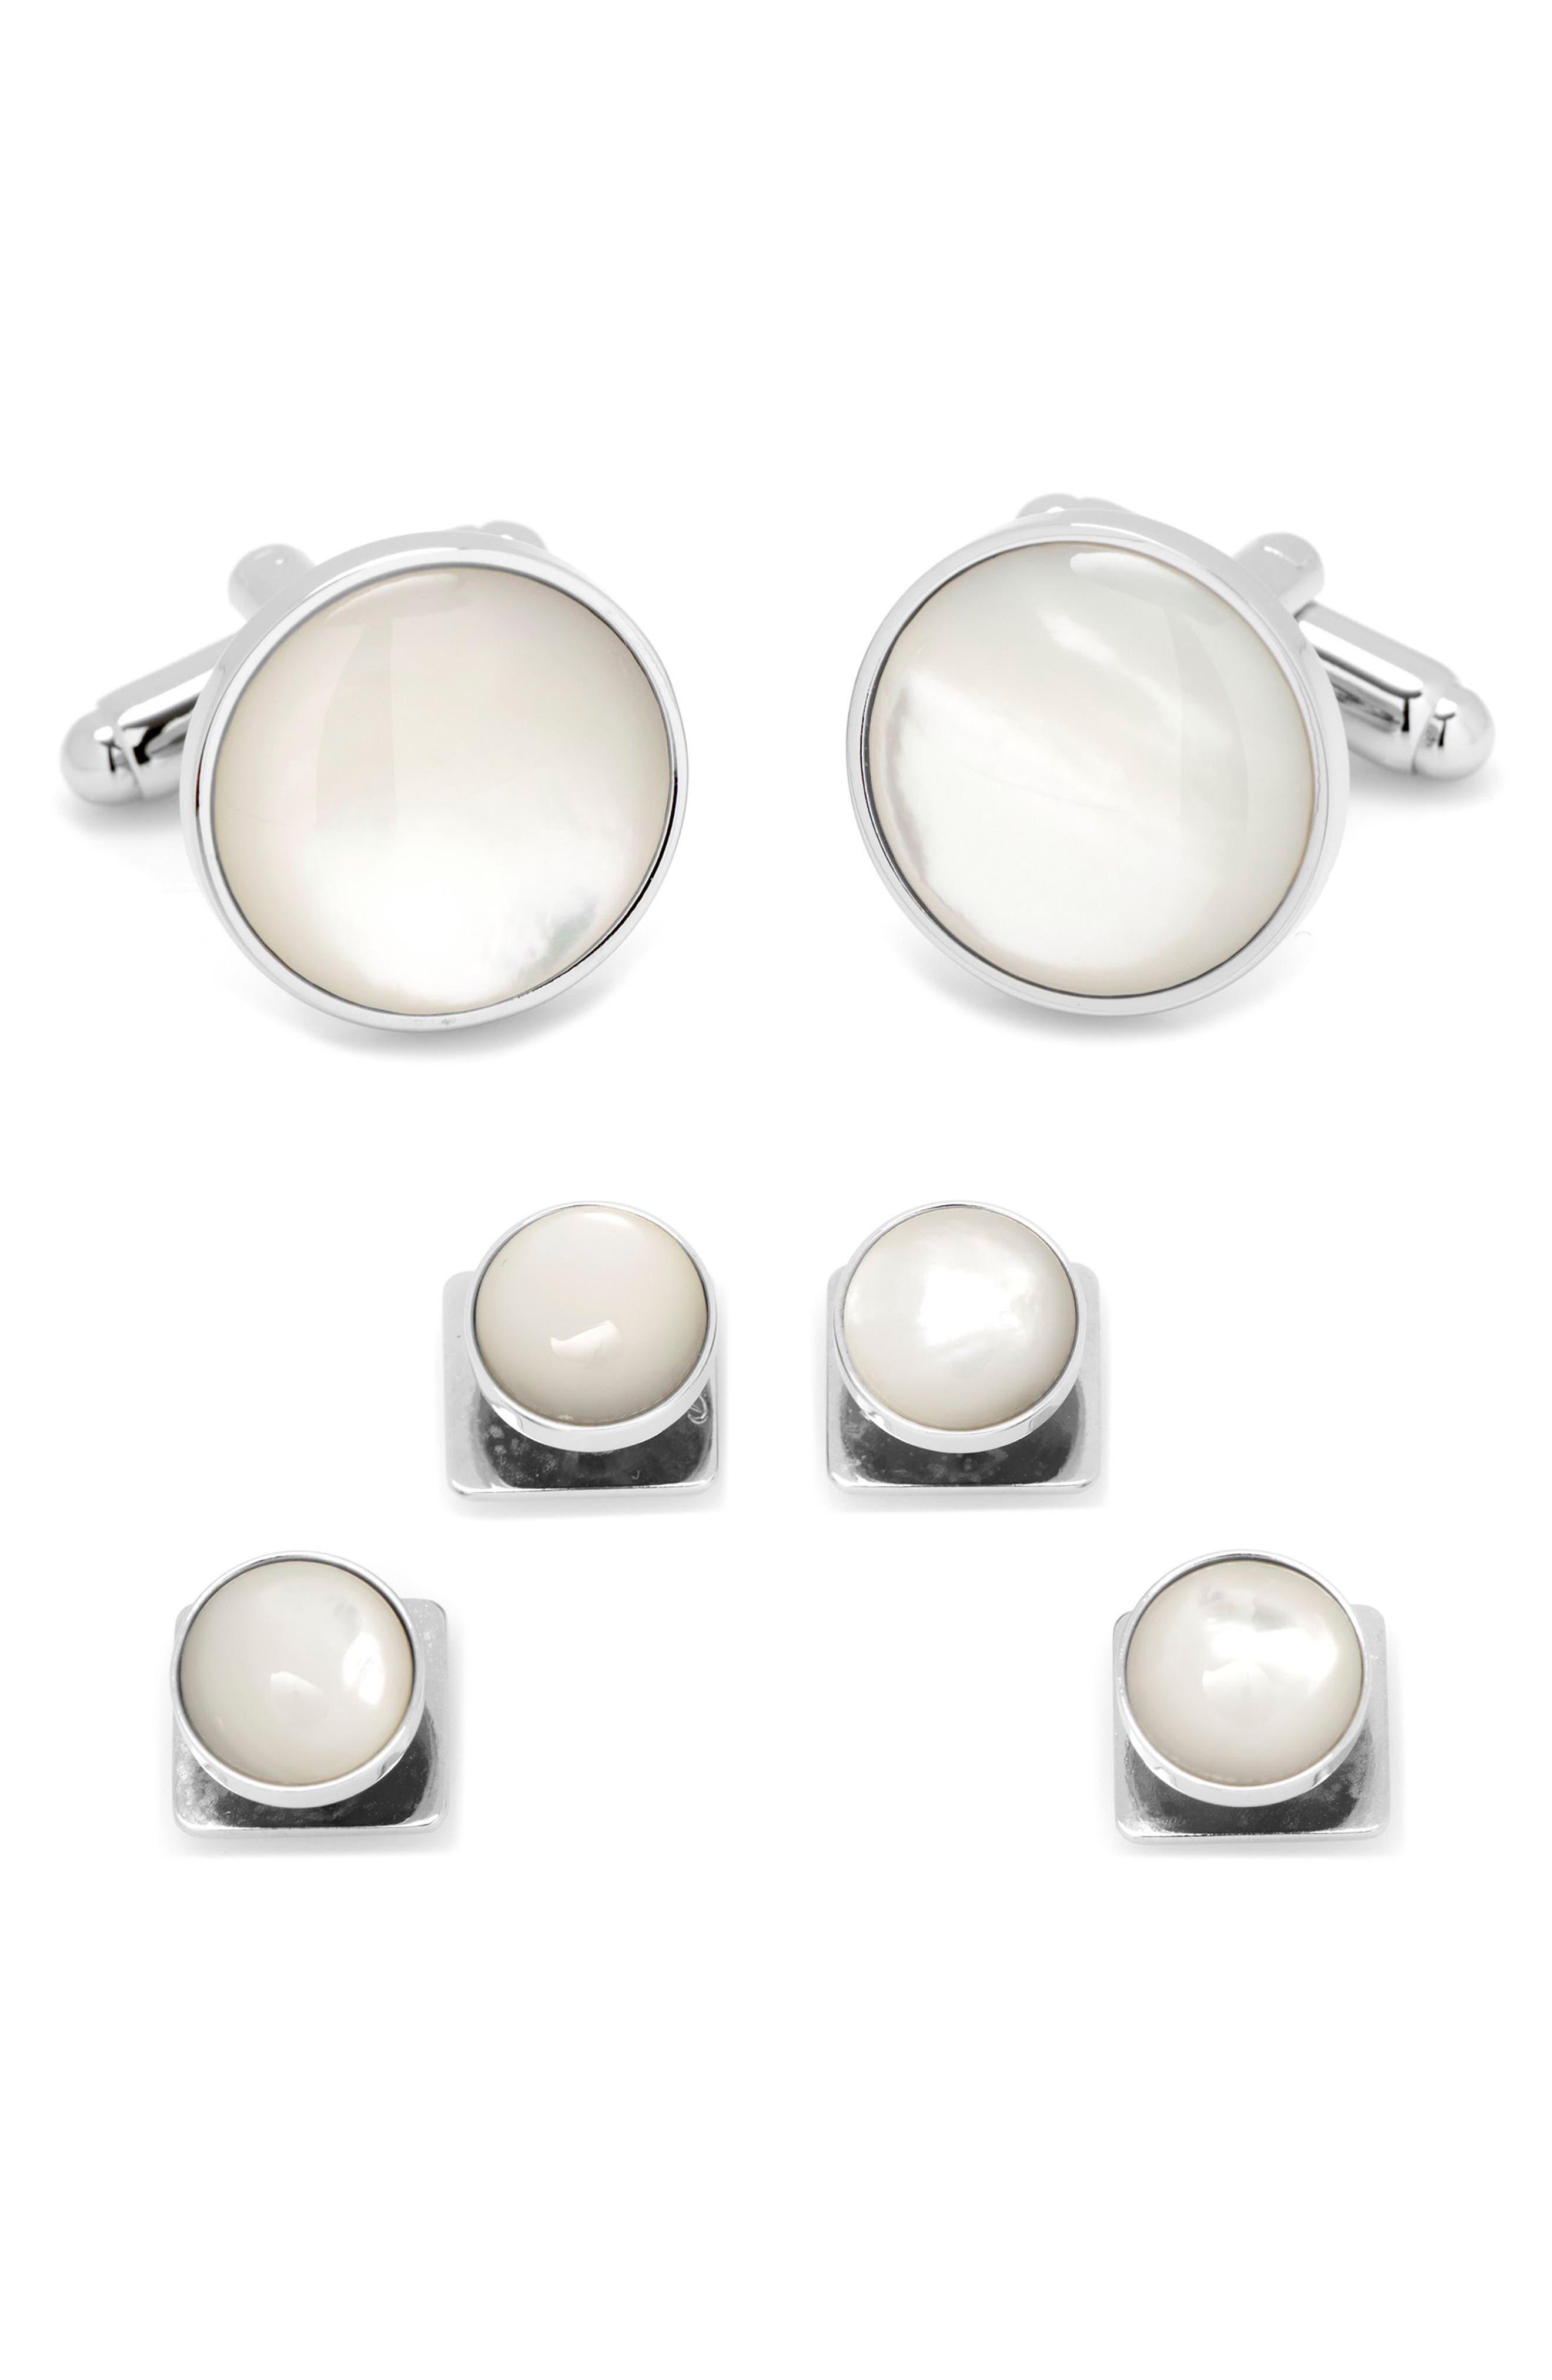 Mother of Pearl Cuff Link & Stud Set,                         Main,                         color, Silver/ White